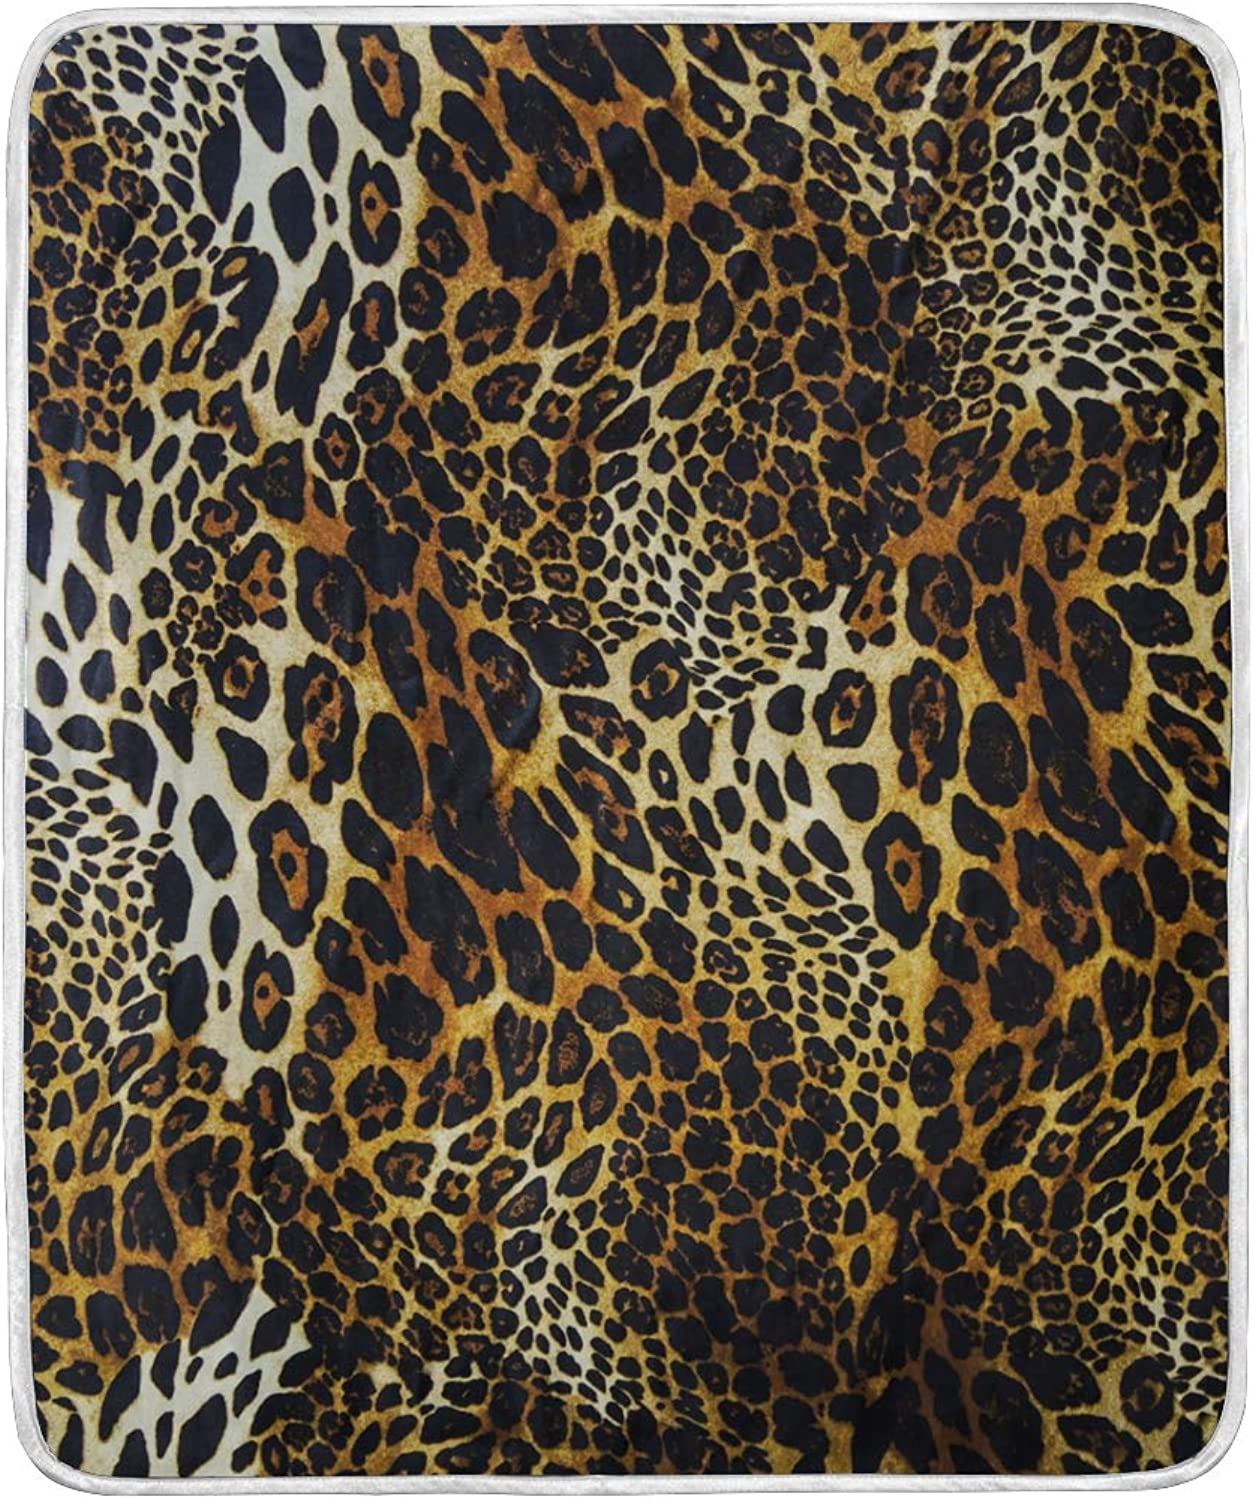 WIHVE Home Decor Blanket Leopard Print Throw Lightweight Soft Warm Blankets Bed Couch Sofa 50 X 60 Inches